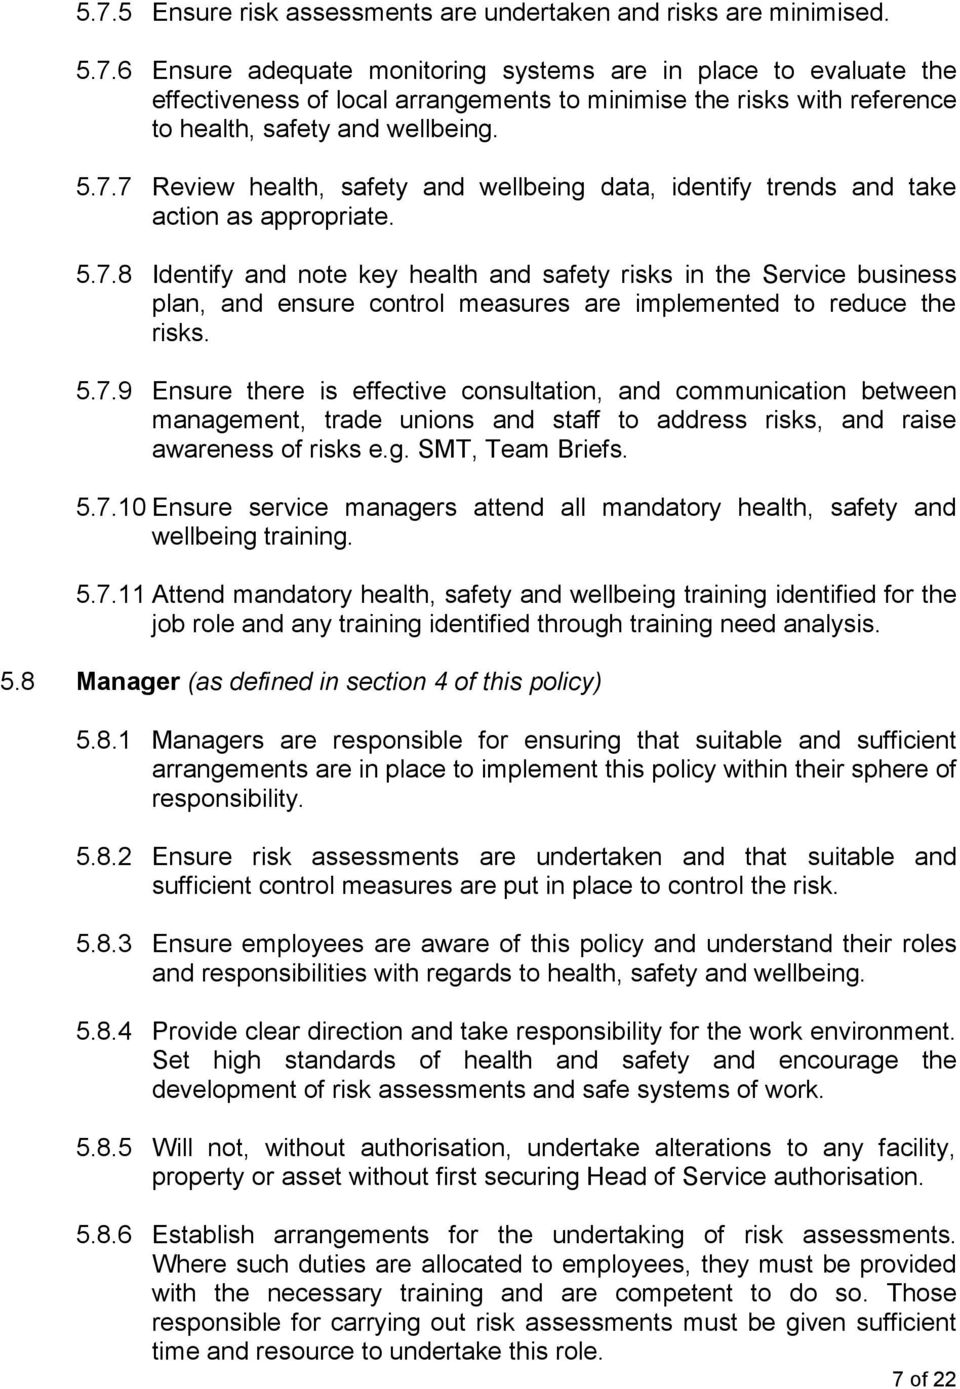 5.7.9 Ensure there is effective consultation, and communication between management, trade unions and staff to address risks, and raise awareness of risks e.g. SMT, Team Briefs. 5.7.10 Ensure service managers attend all mandatory health, safety and wellbeing training.